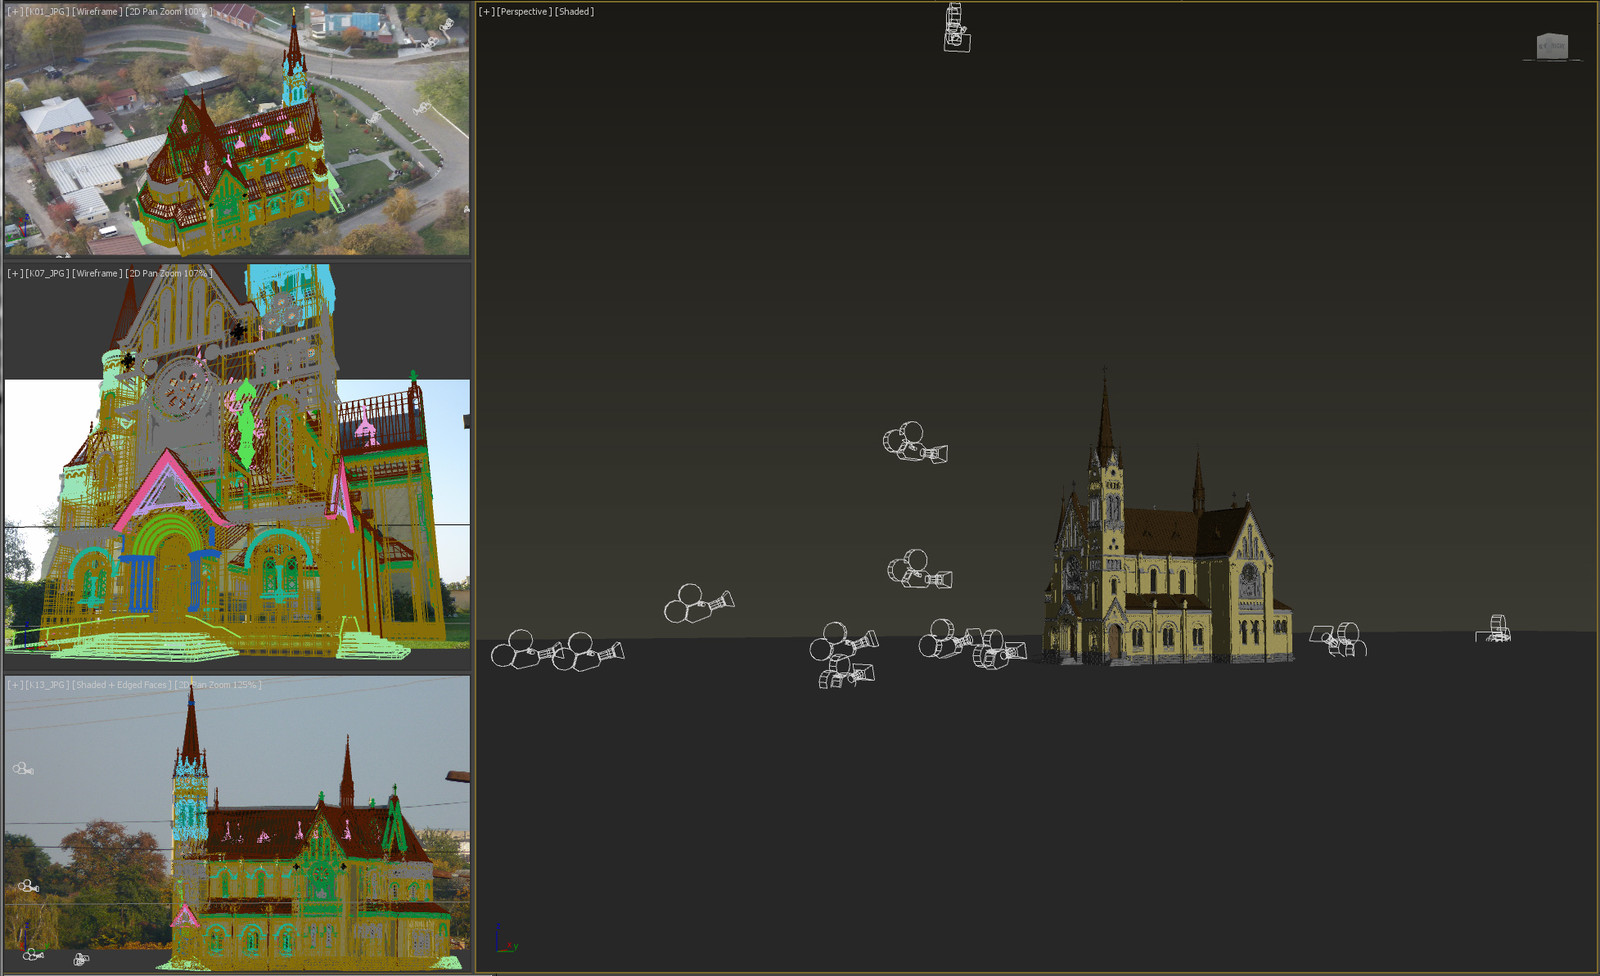 16 cameras from different photos was calibrated in Autodesk ImageModeler. Total 62 photos was used in model creation